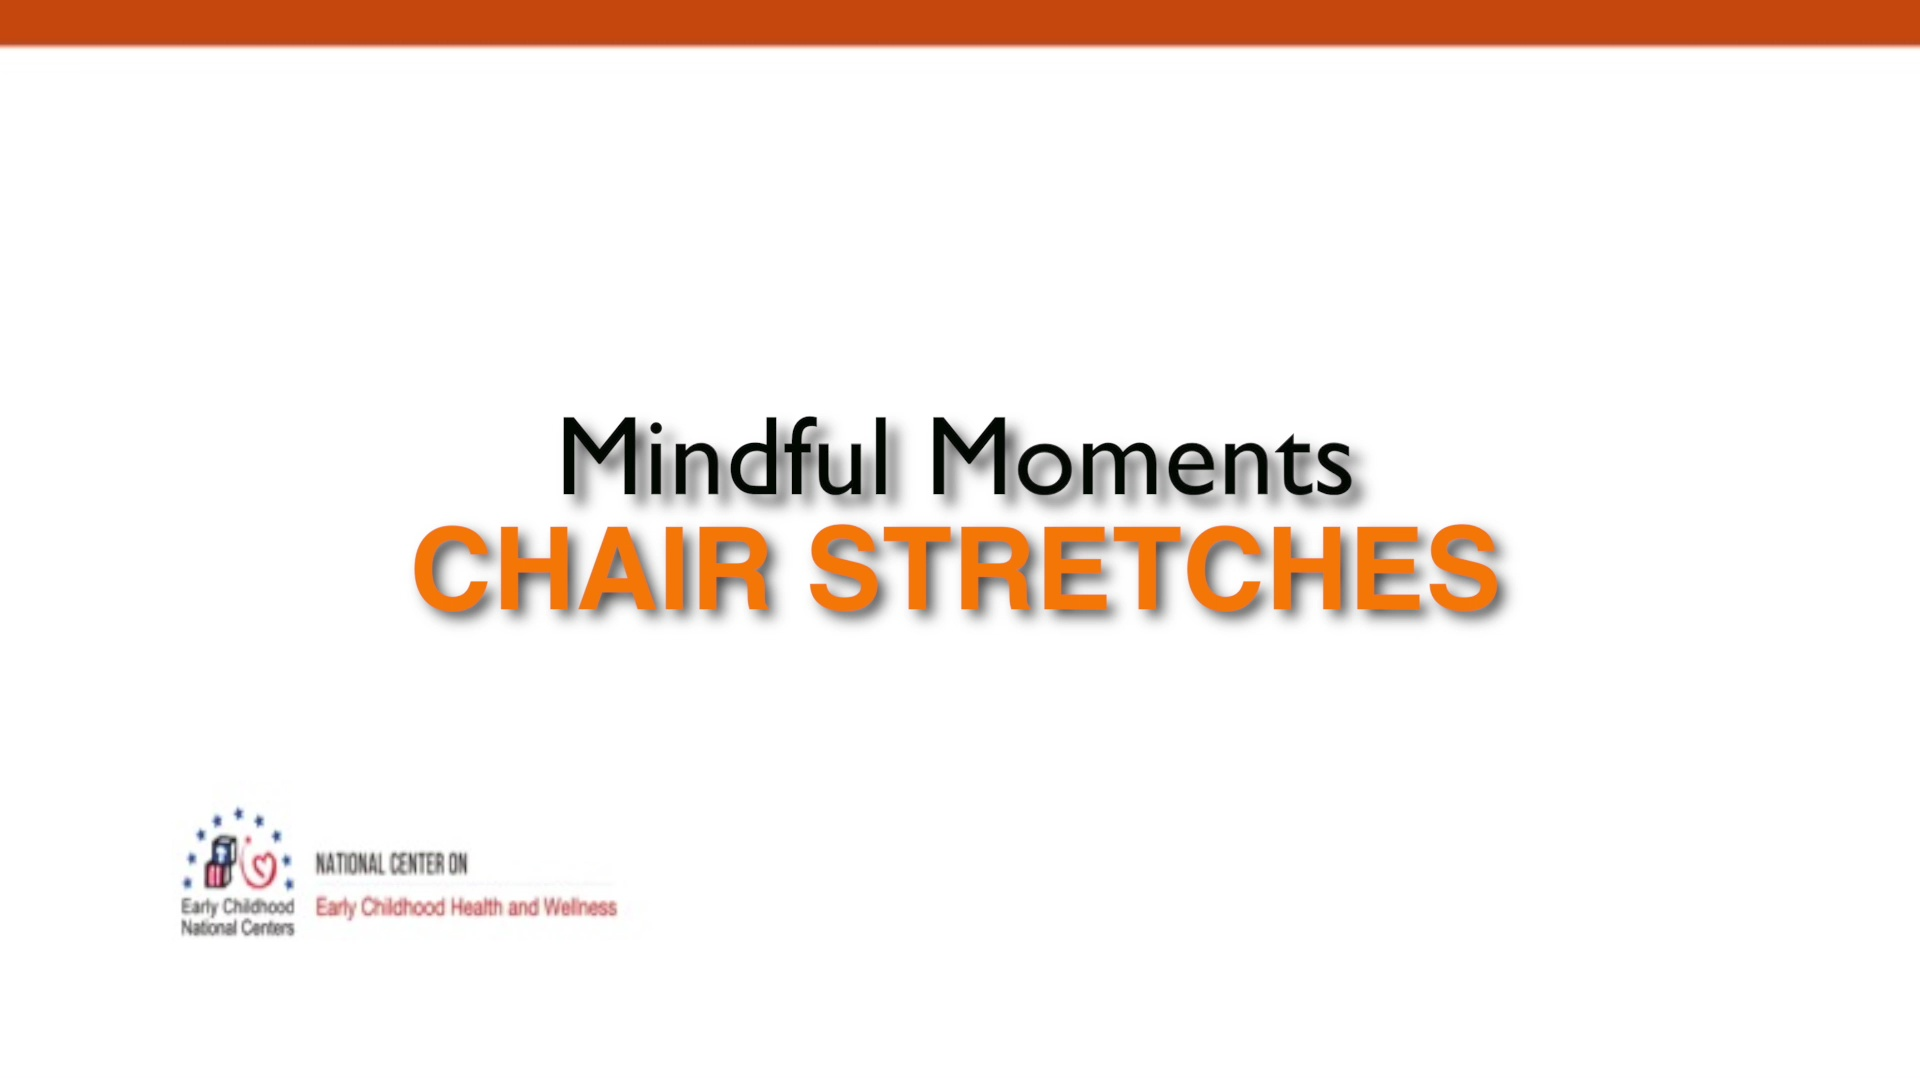 All Chair Stretches